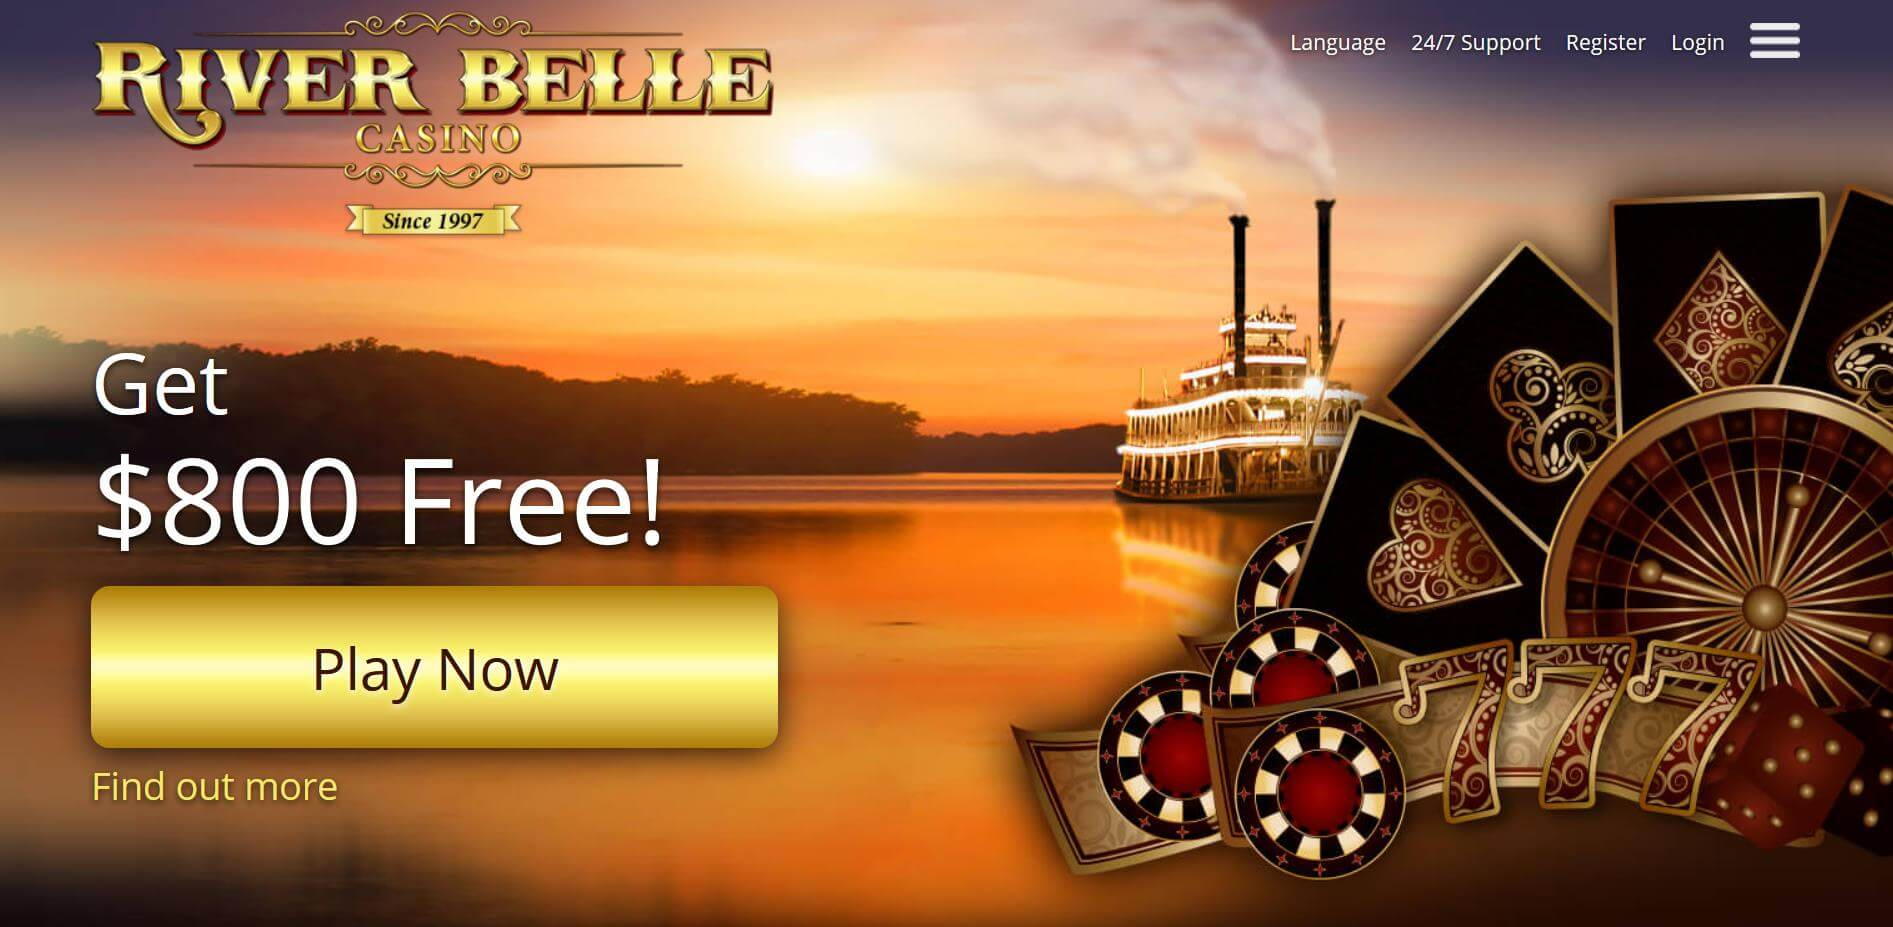 Riverbelle Casino